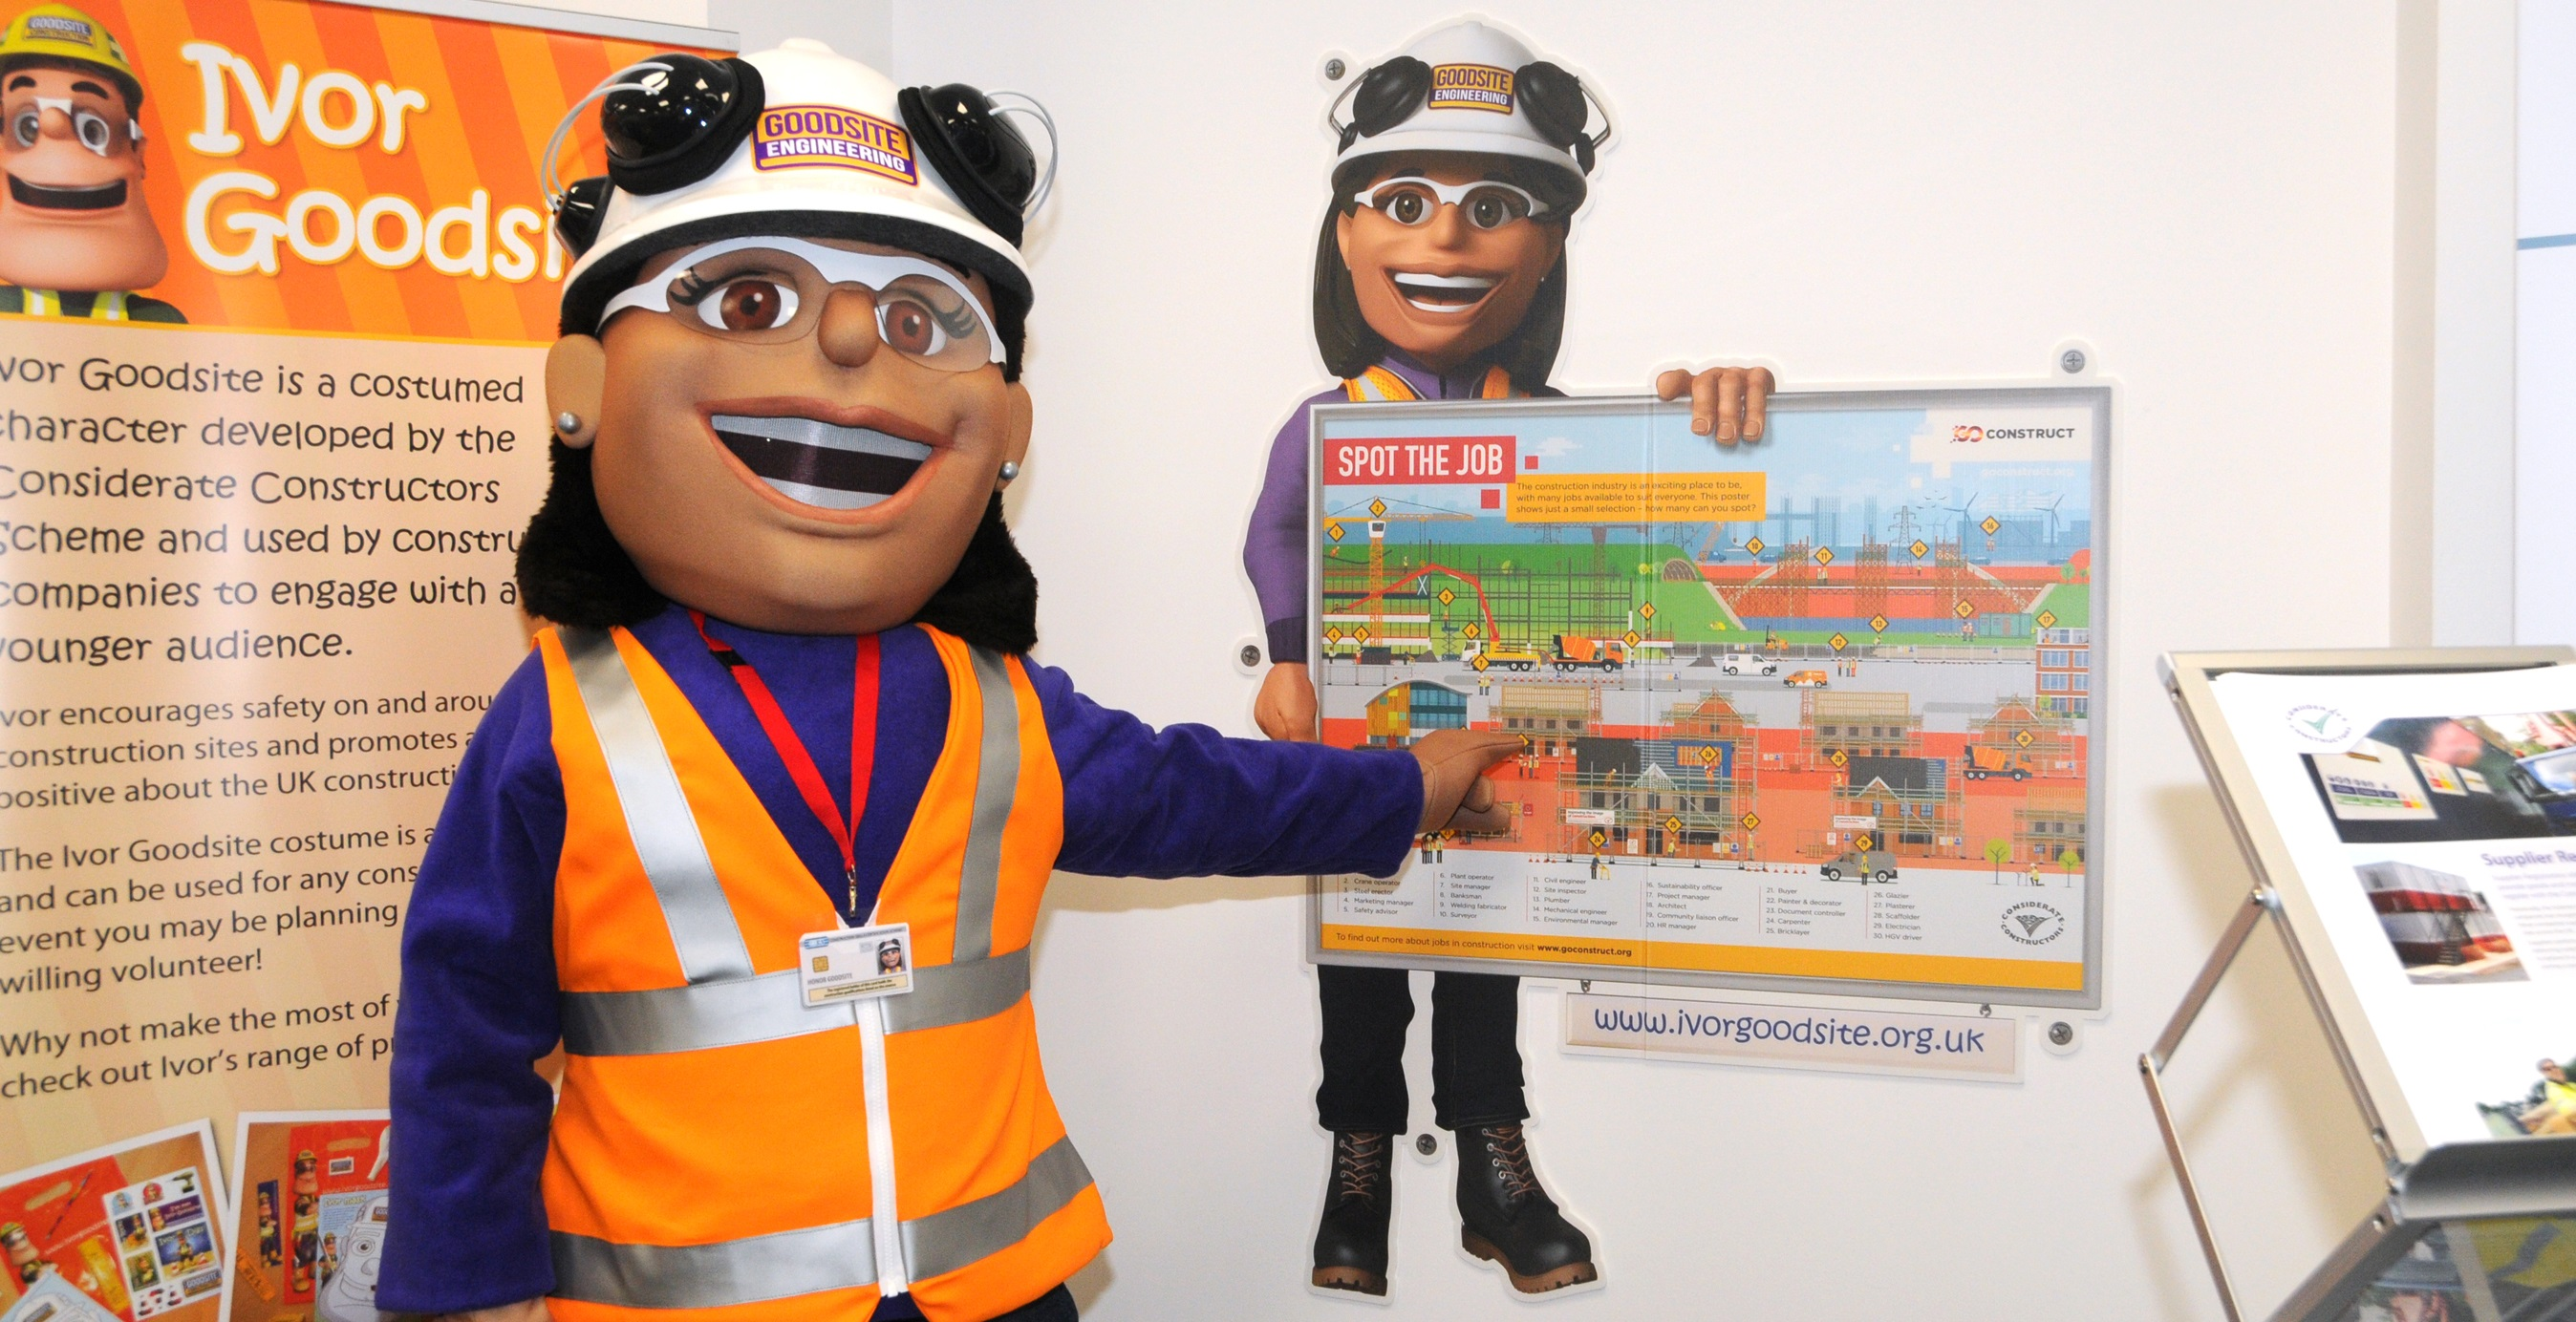 spot the job sign launched to help young people identify careers the scheme joins forces the citb to encourage the next generation of workers to climb the rewarding career ladder of construction